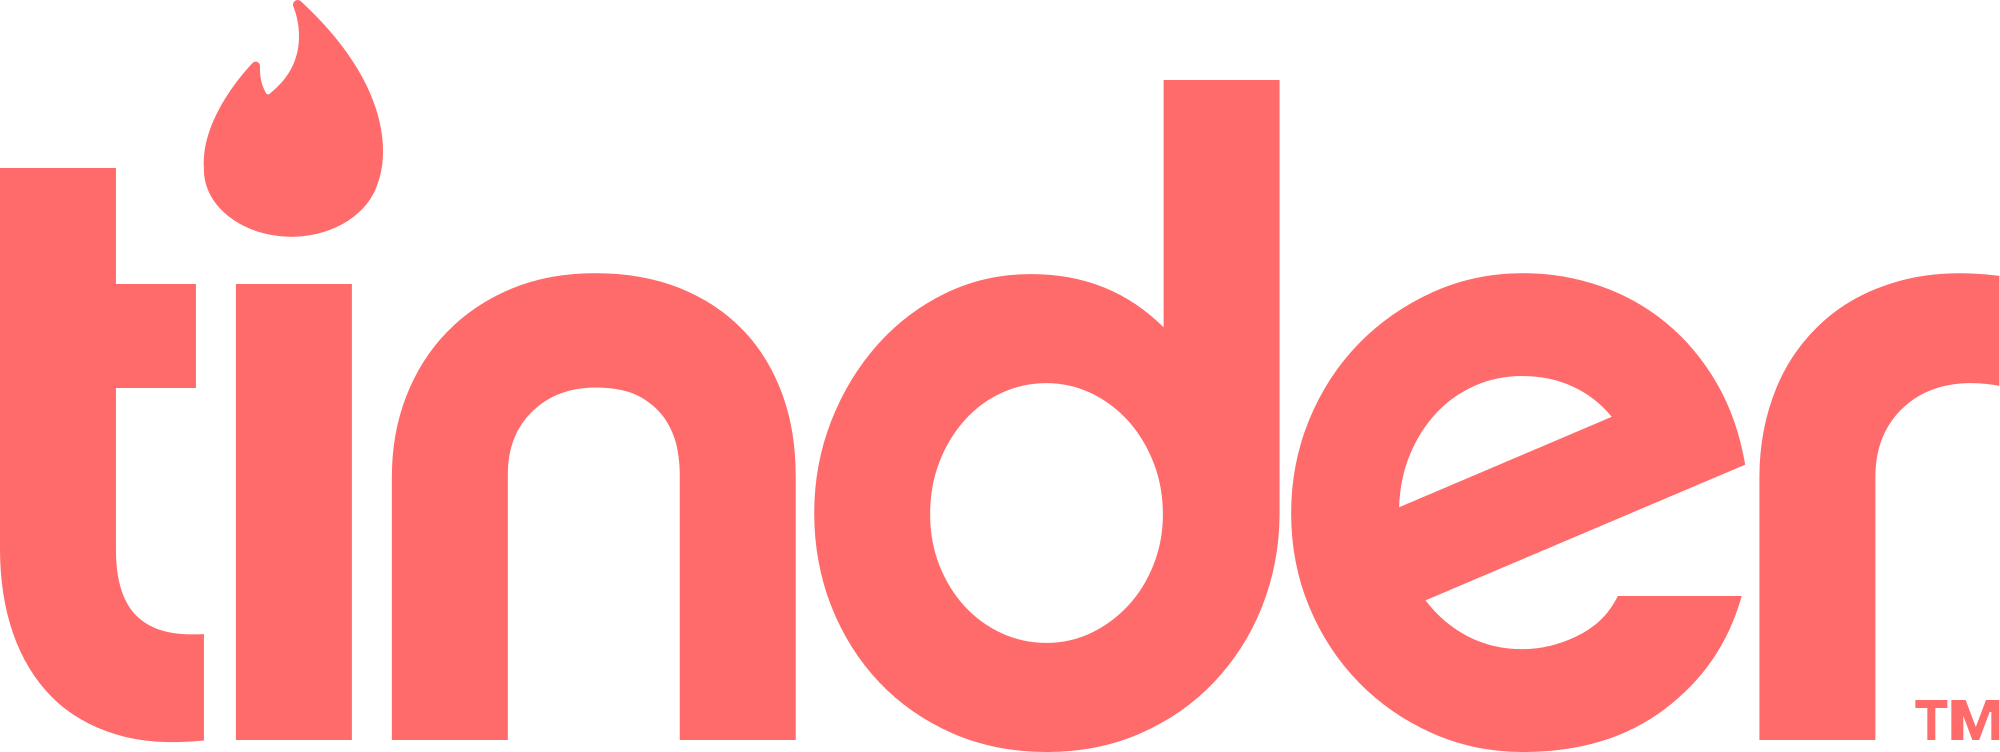 Tinder logo png. File svg wikimedia commons